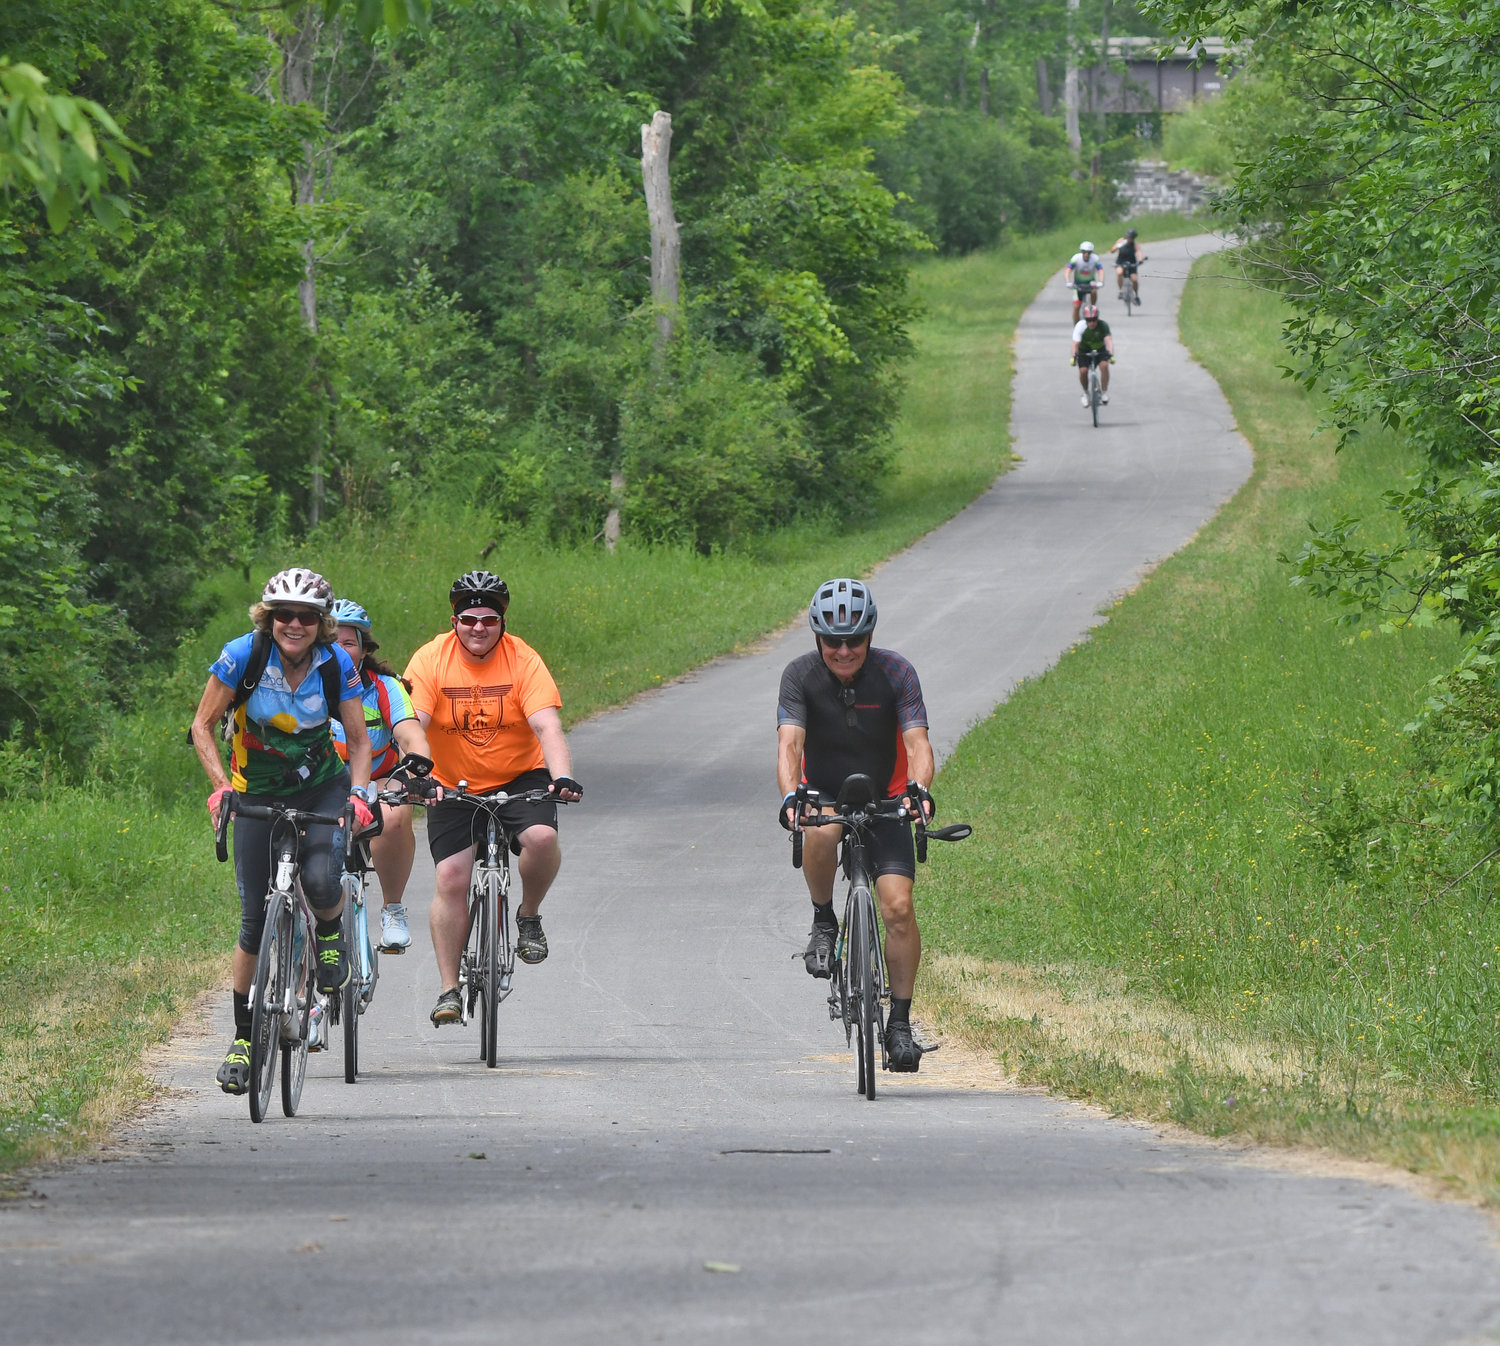 A gaggle of bicyclists make their way to Rome on the trail in New London late Thursday morning.